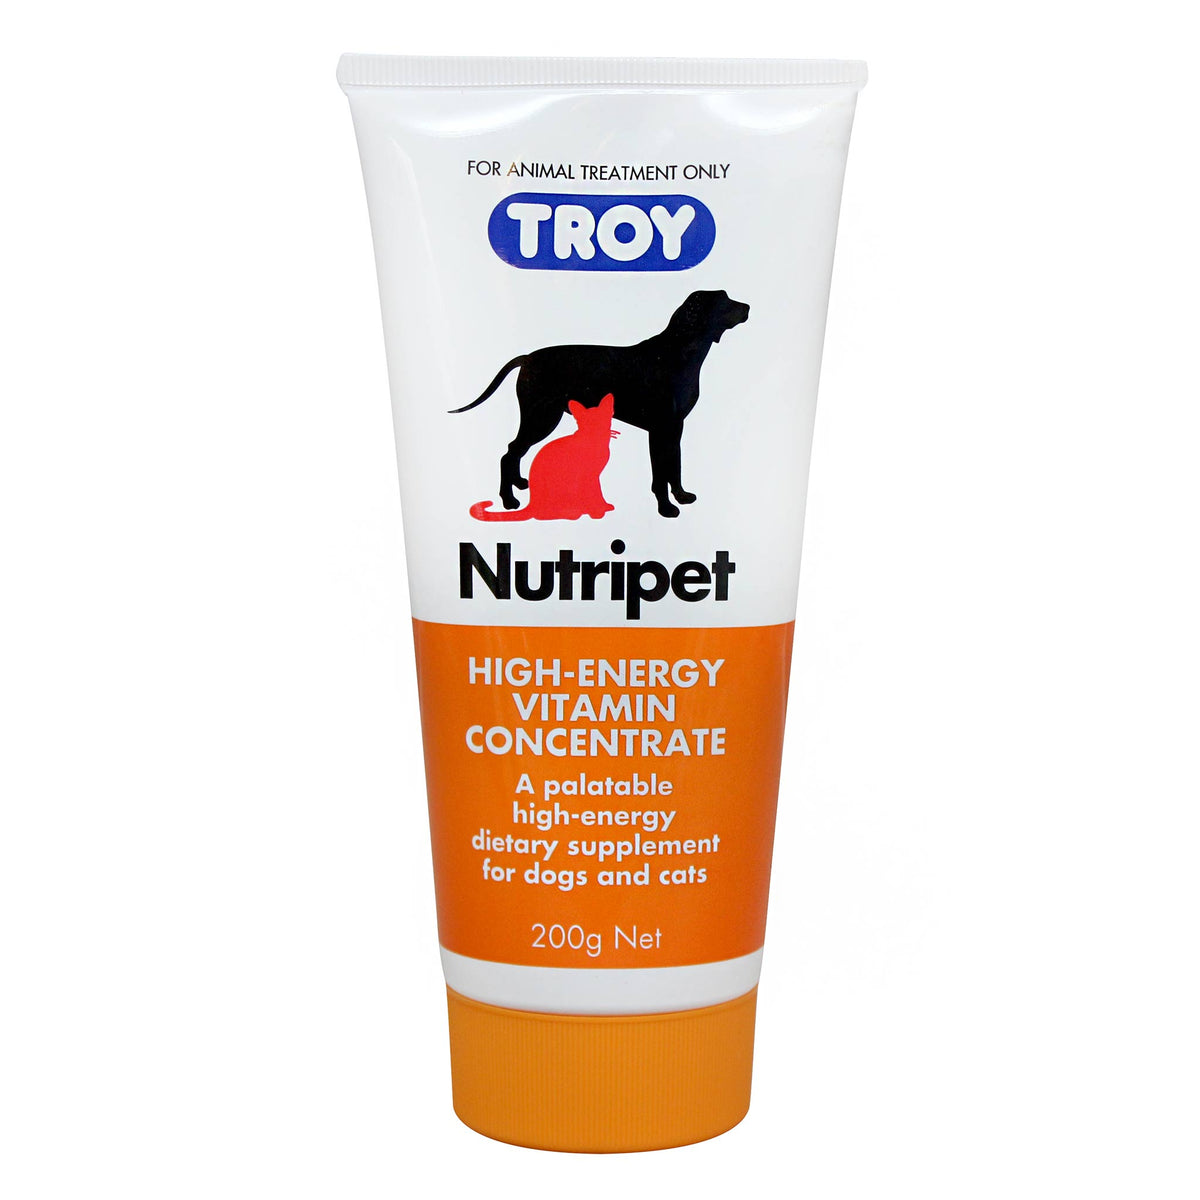 Troy Nutripet High Energy Vitamin Concentrate 200g